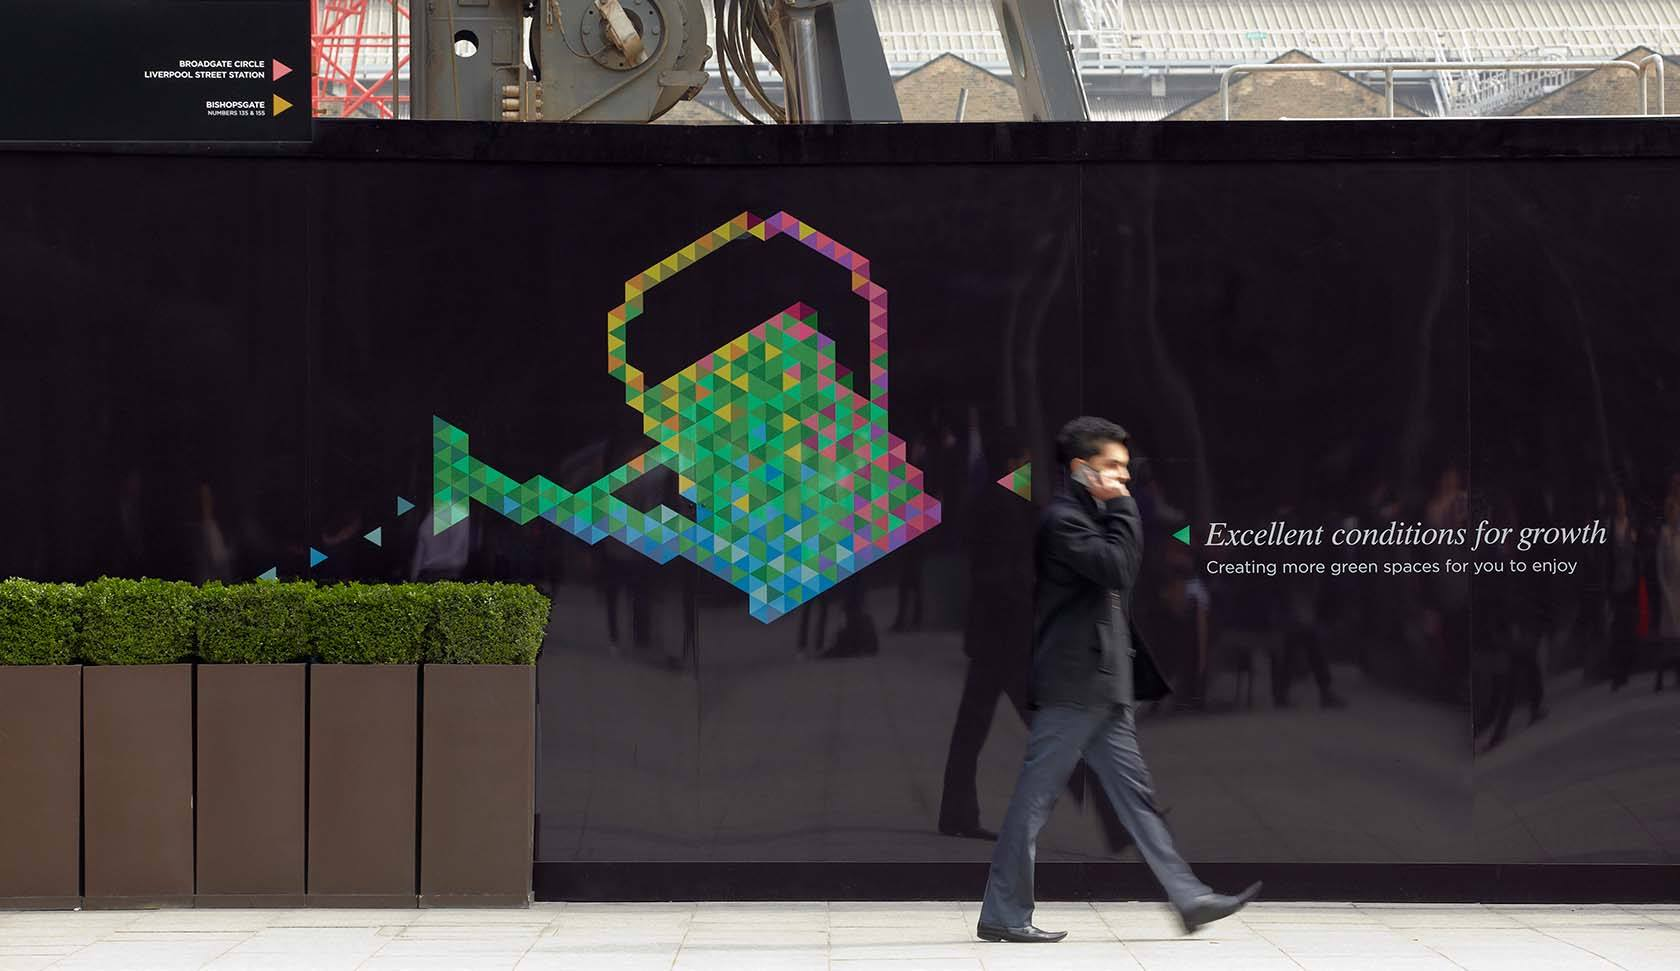 WMH-BROADGATE-BRITISH-LAND-HOARDING-WATERING-CAN-WEB image